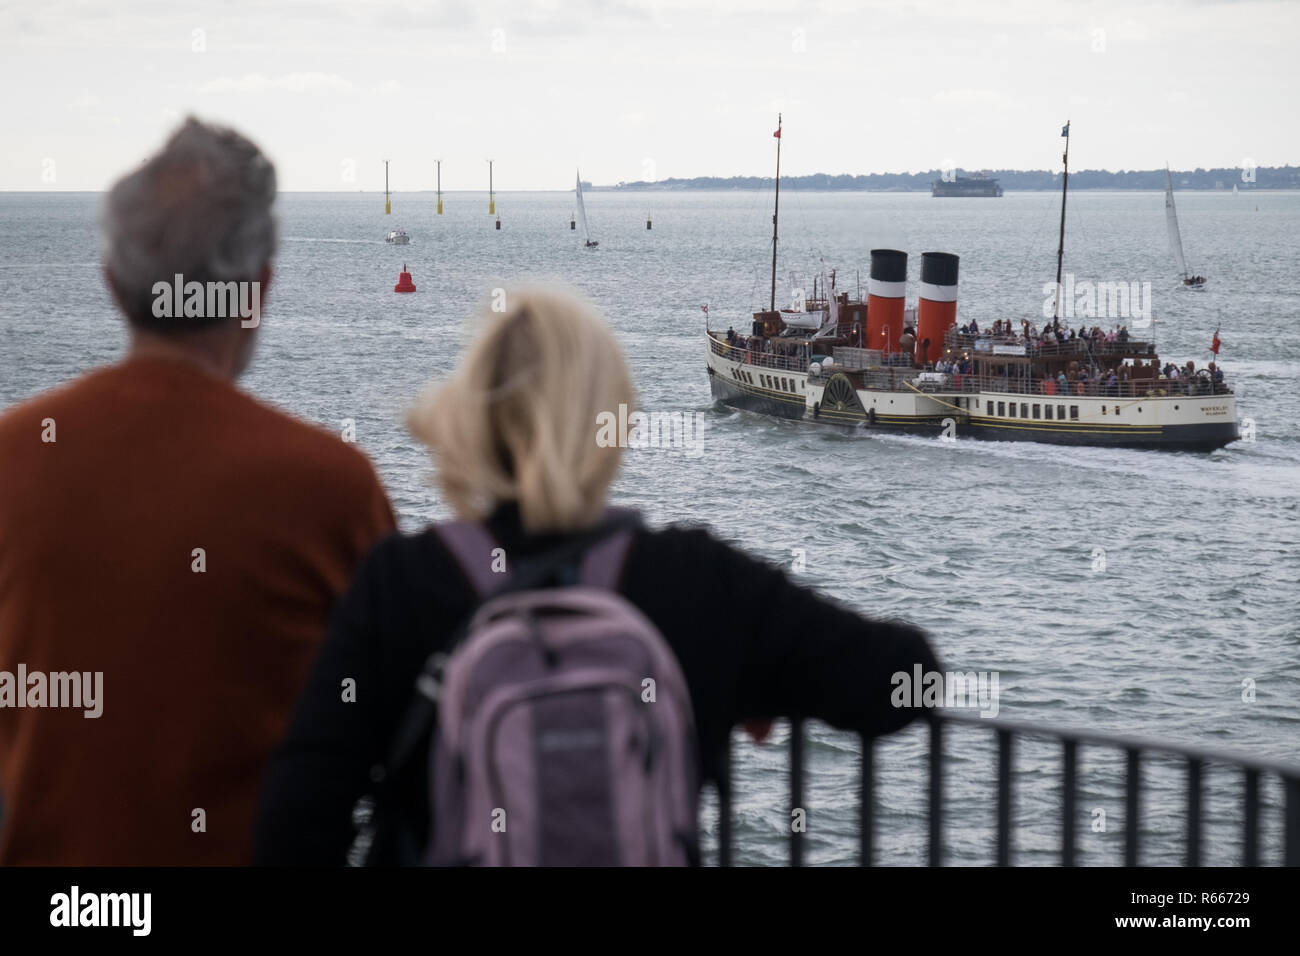 PS Waverley, the world's last seagoing paddle steamer sailing out of Portsmouth Harbour on an excursion to Weymouth - Stock Image